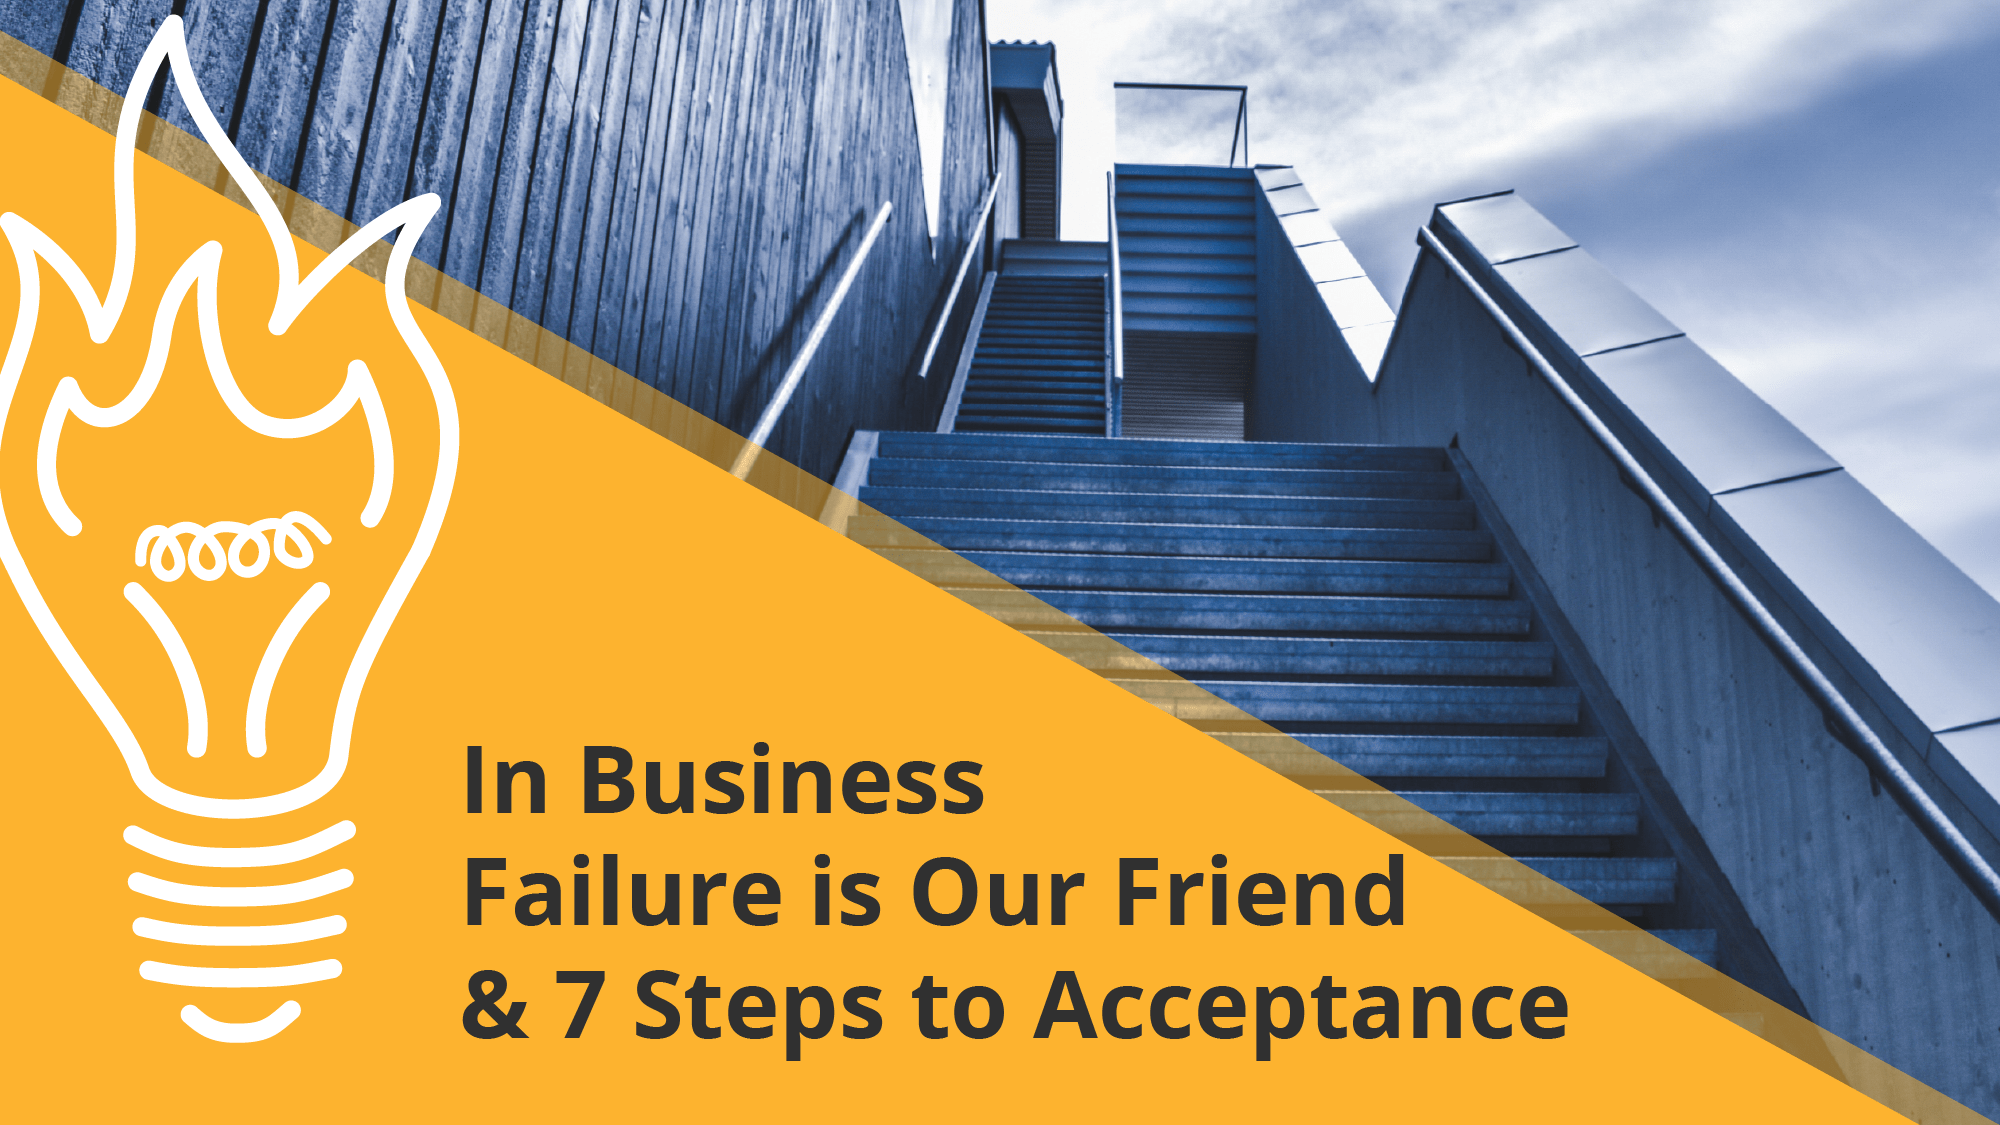 How to accept failure in business